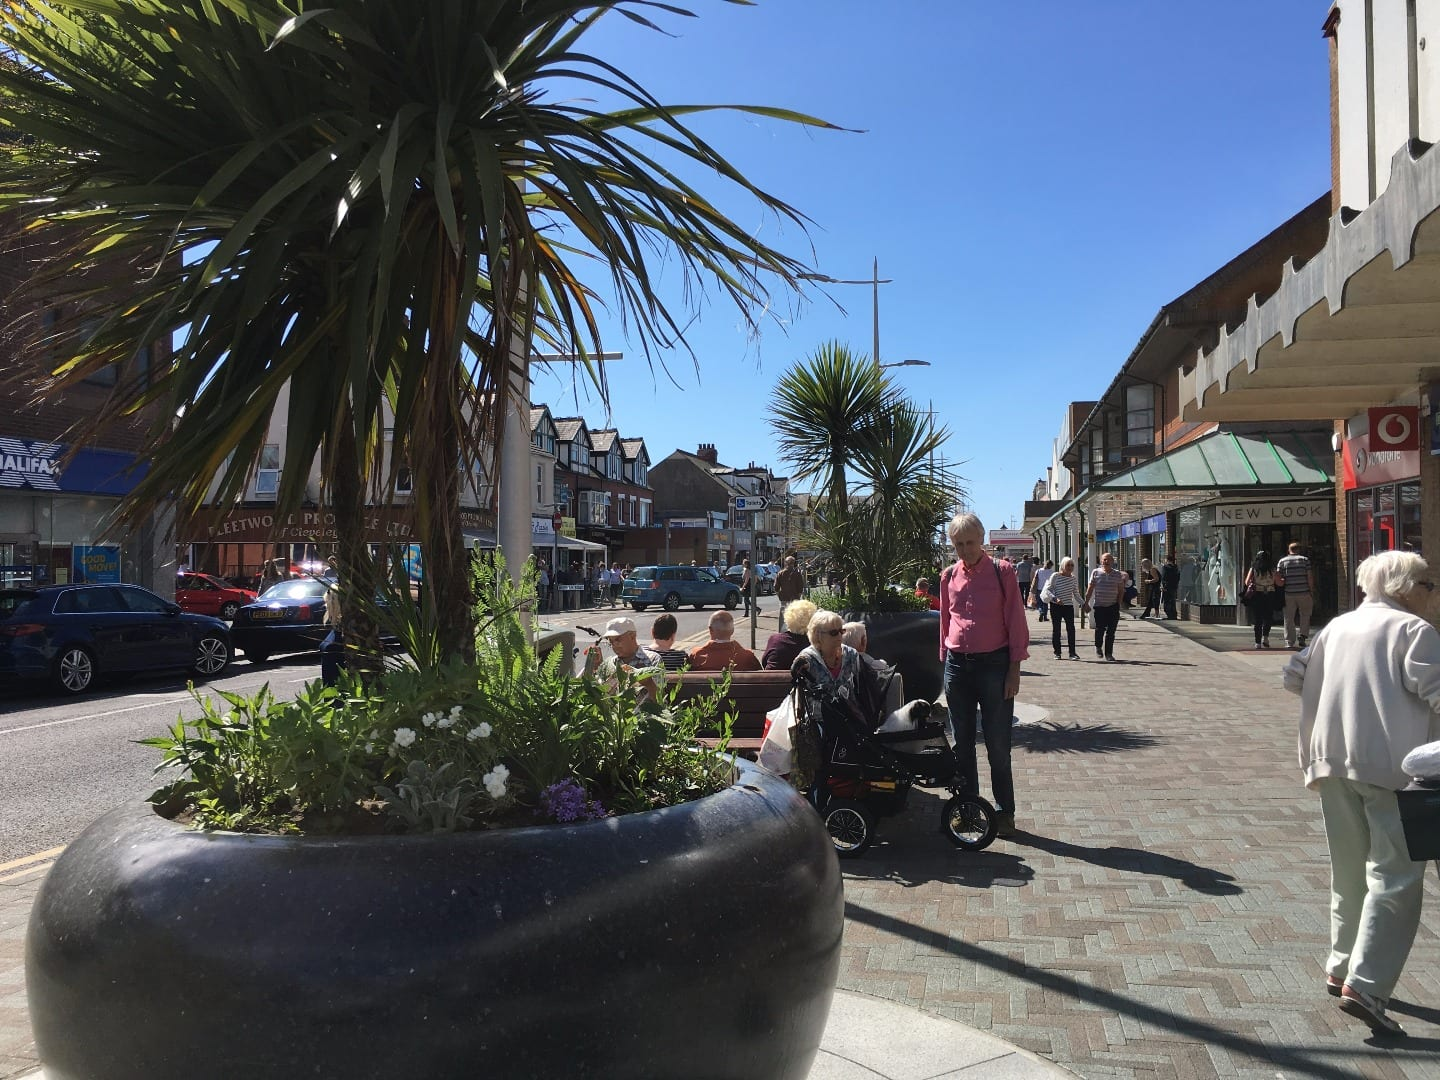 Cleveleys town centre on Saturday